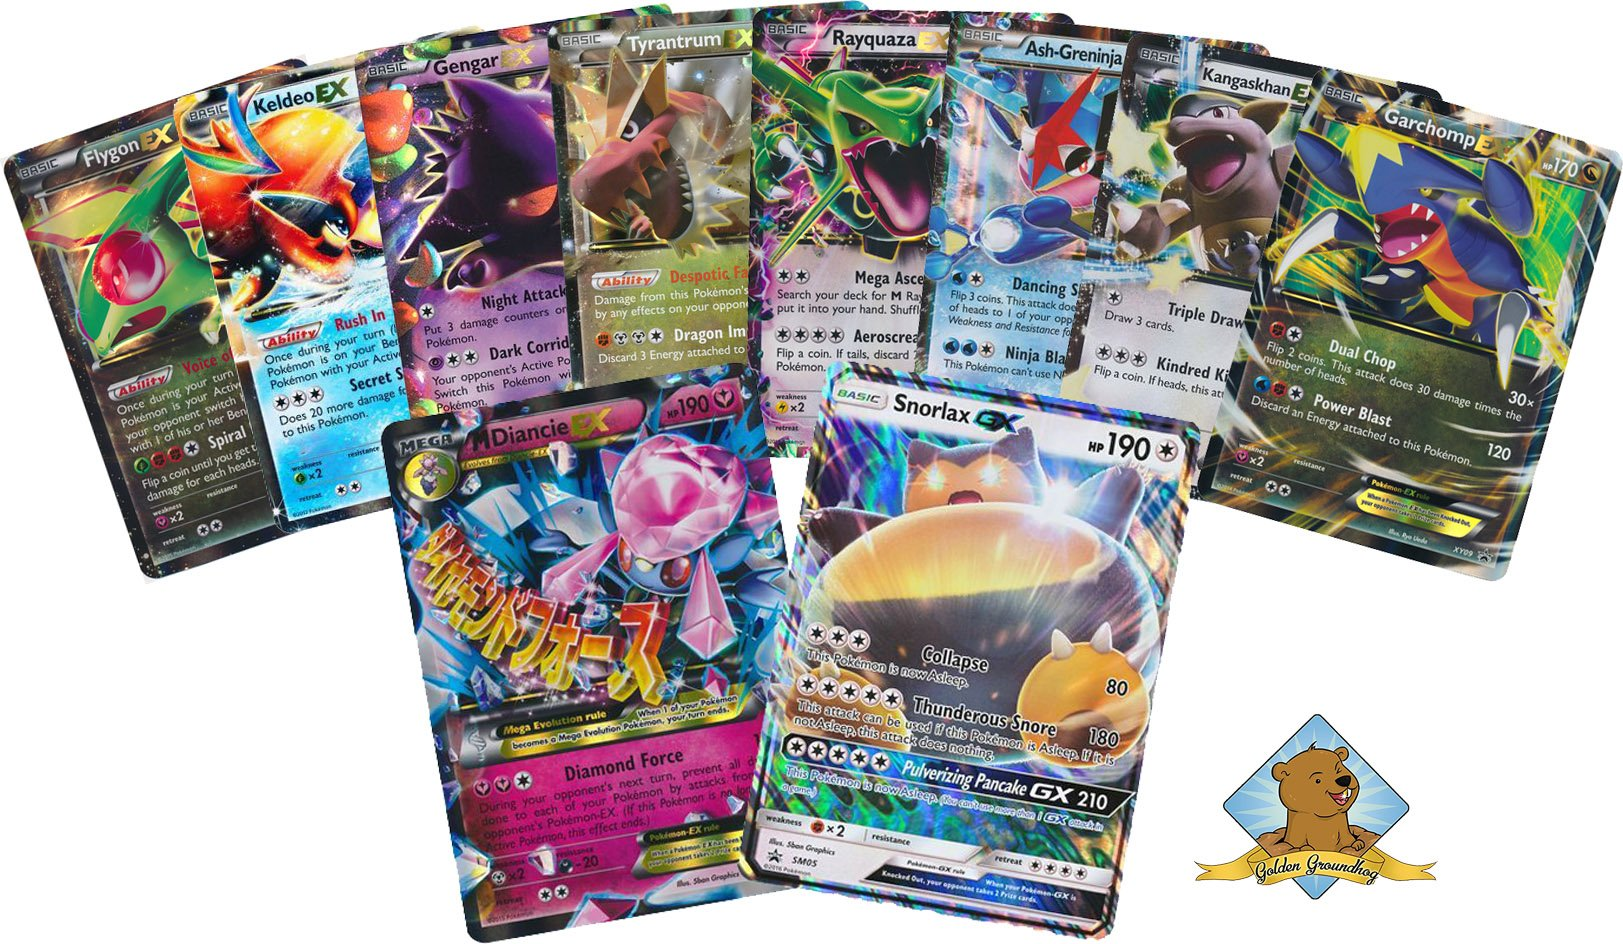 10 Oversize Pokemon Cards! No Duplication - 1 MEGA EX and 1 GX ULTRA RARE! By Golden Groundhog! by GoldenGroundhog